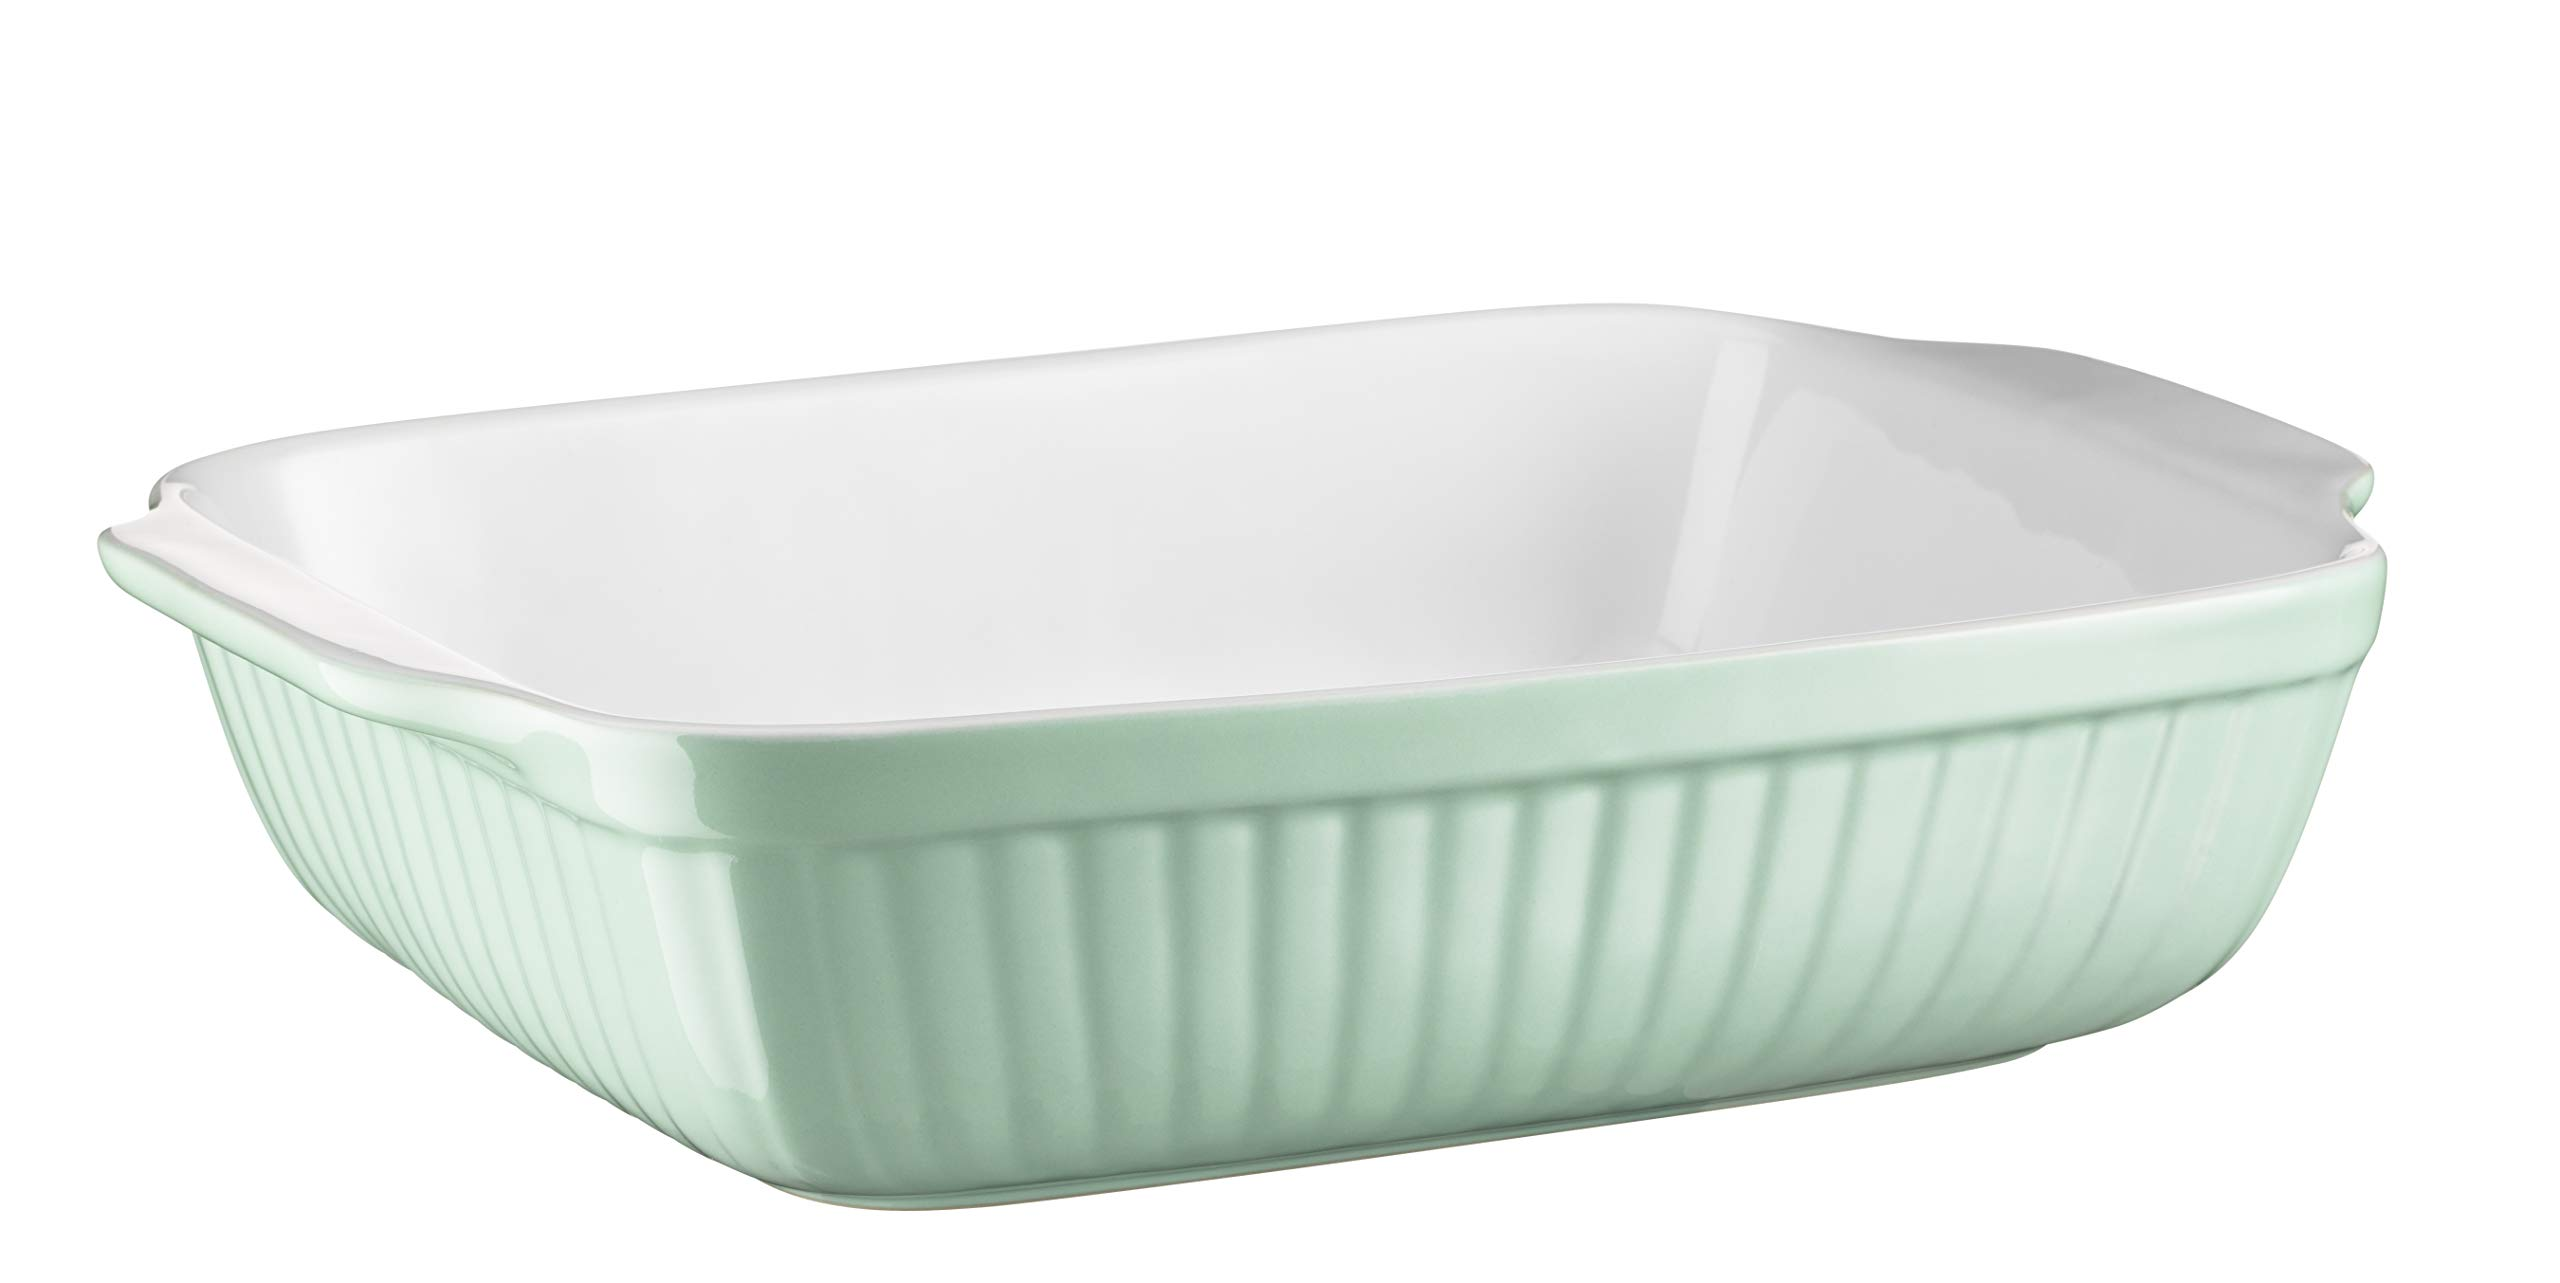 Mäser Kitchen Time 931486 Rectangular Baking Dish for Lasagne, Baking and Tiramisu Mould, Scratch and Cut-Resistant Square Oven Dish Ceramic by Mäser (Image #7)